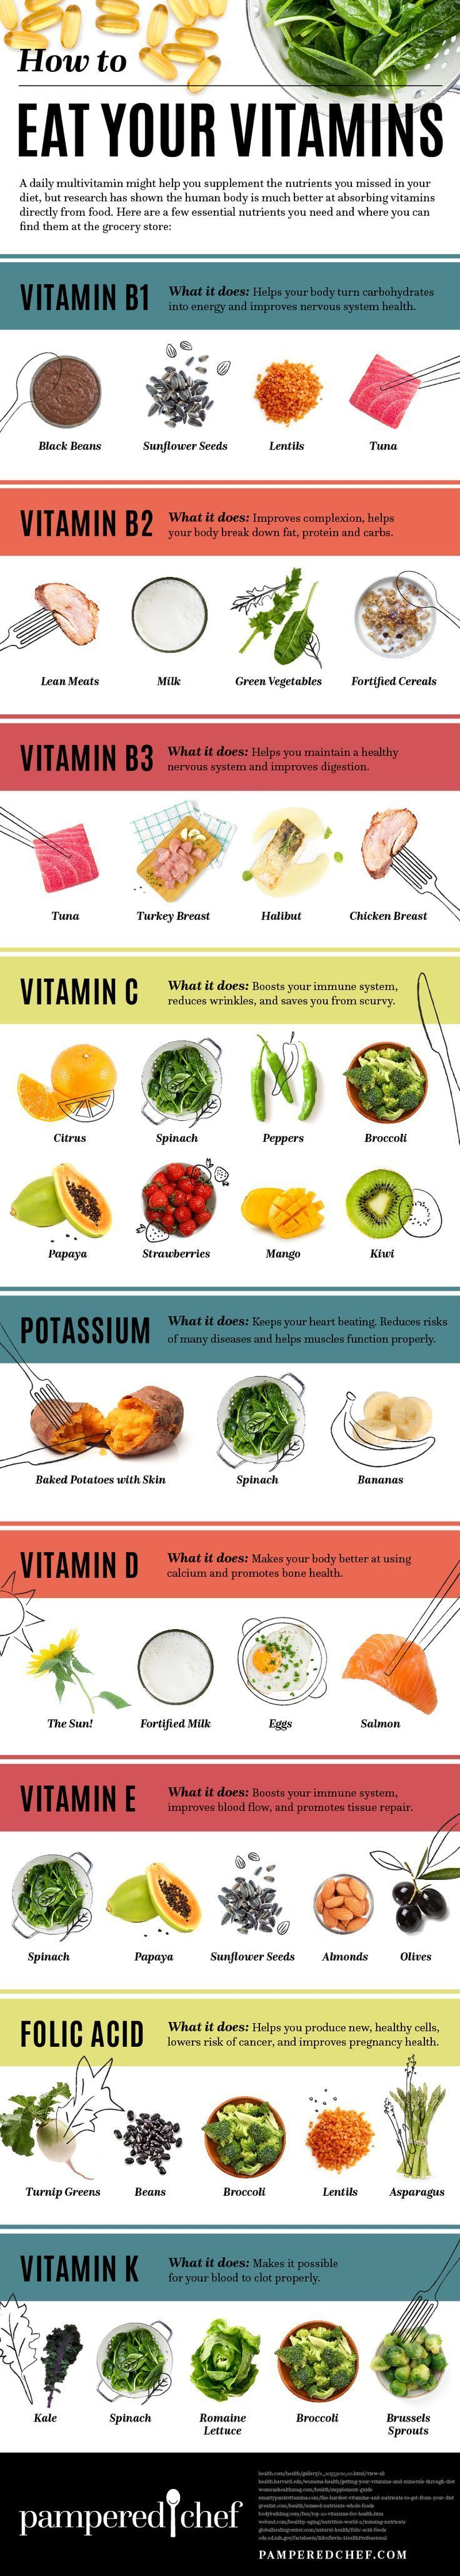 Are you getting your vitamin D? How about E? Know what foods you can eat to be sure you're getting all your essential vitamins with this infographic. | Health + Fitness Tips